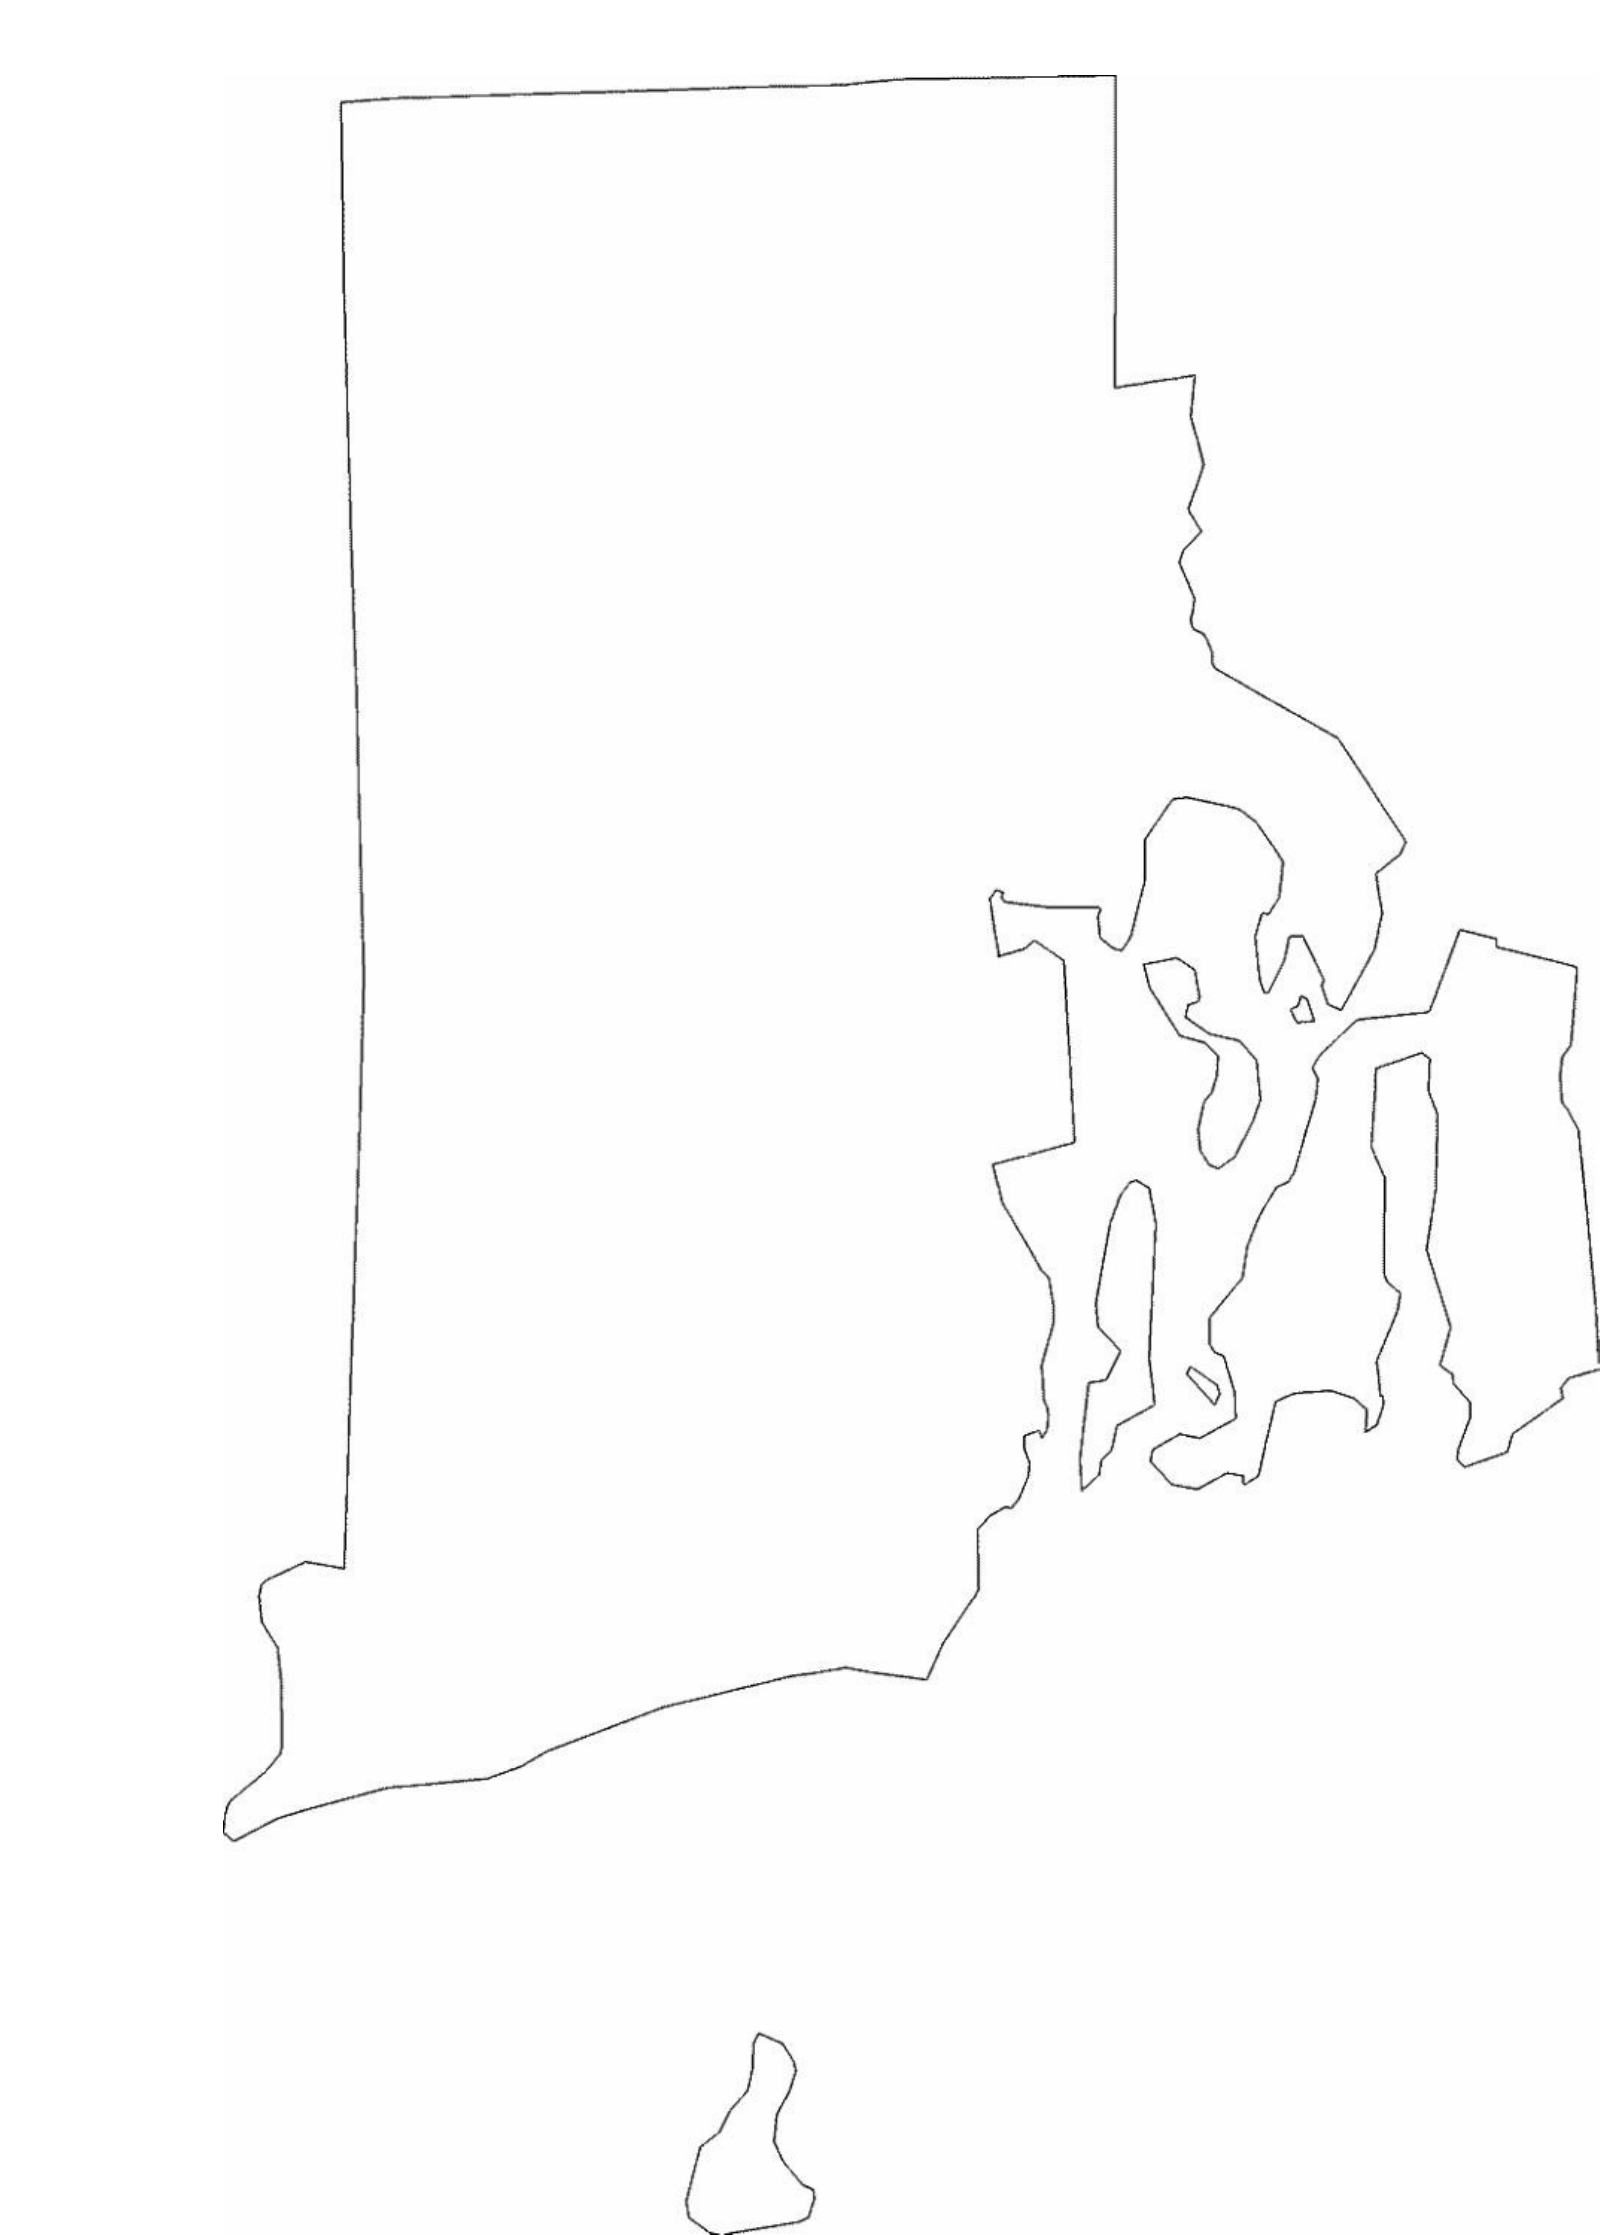 rhode island state outline map free download